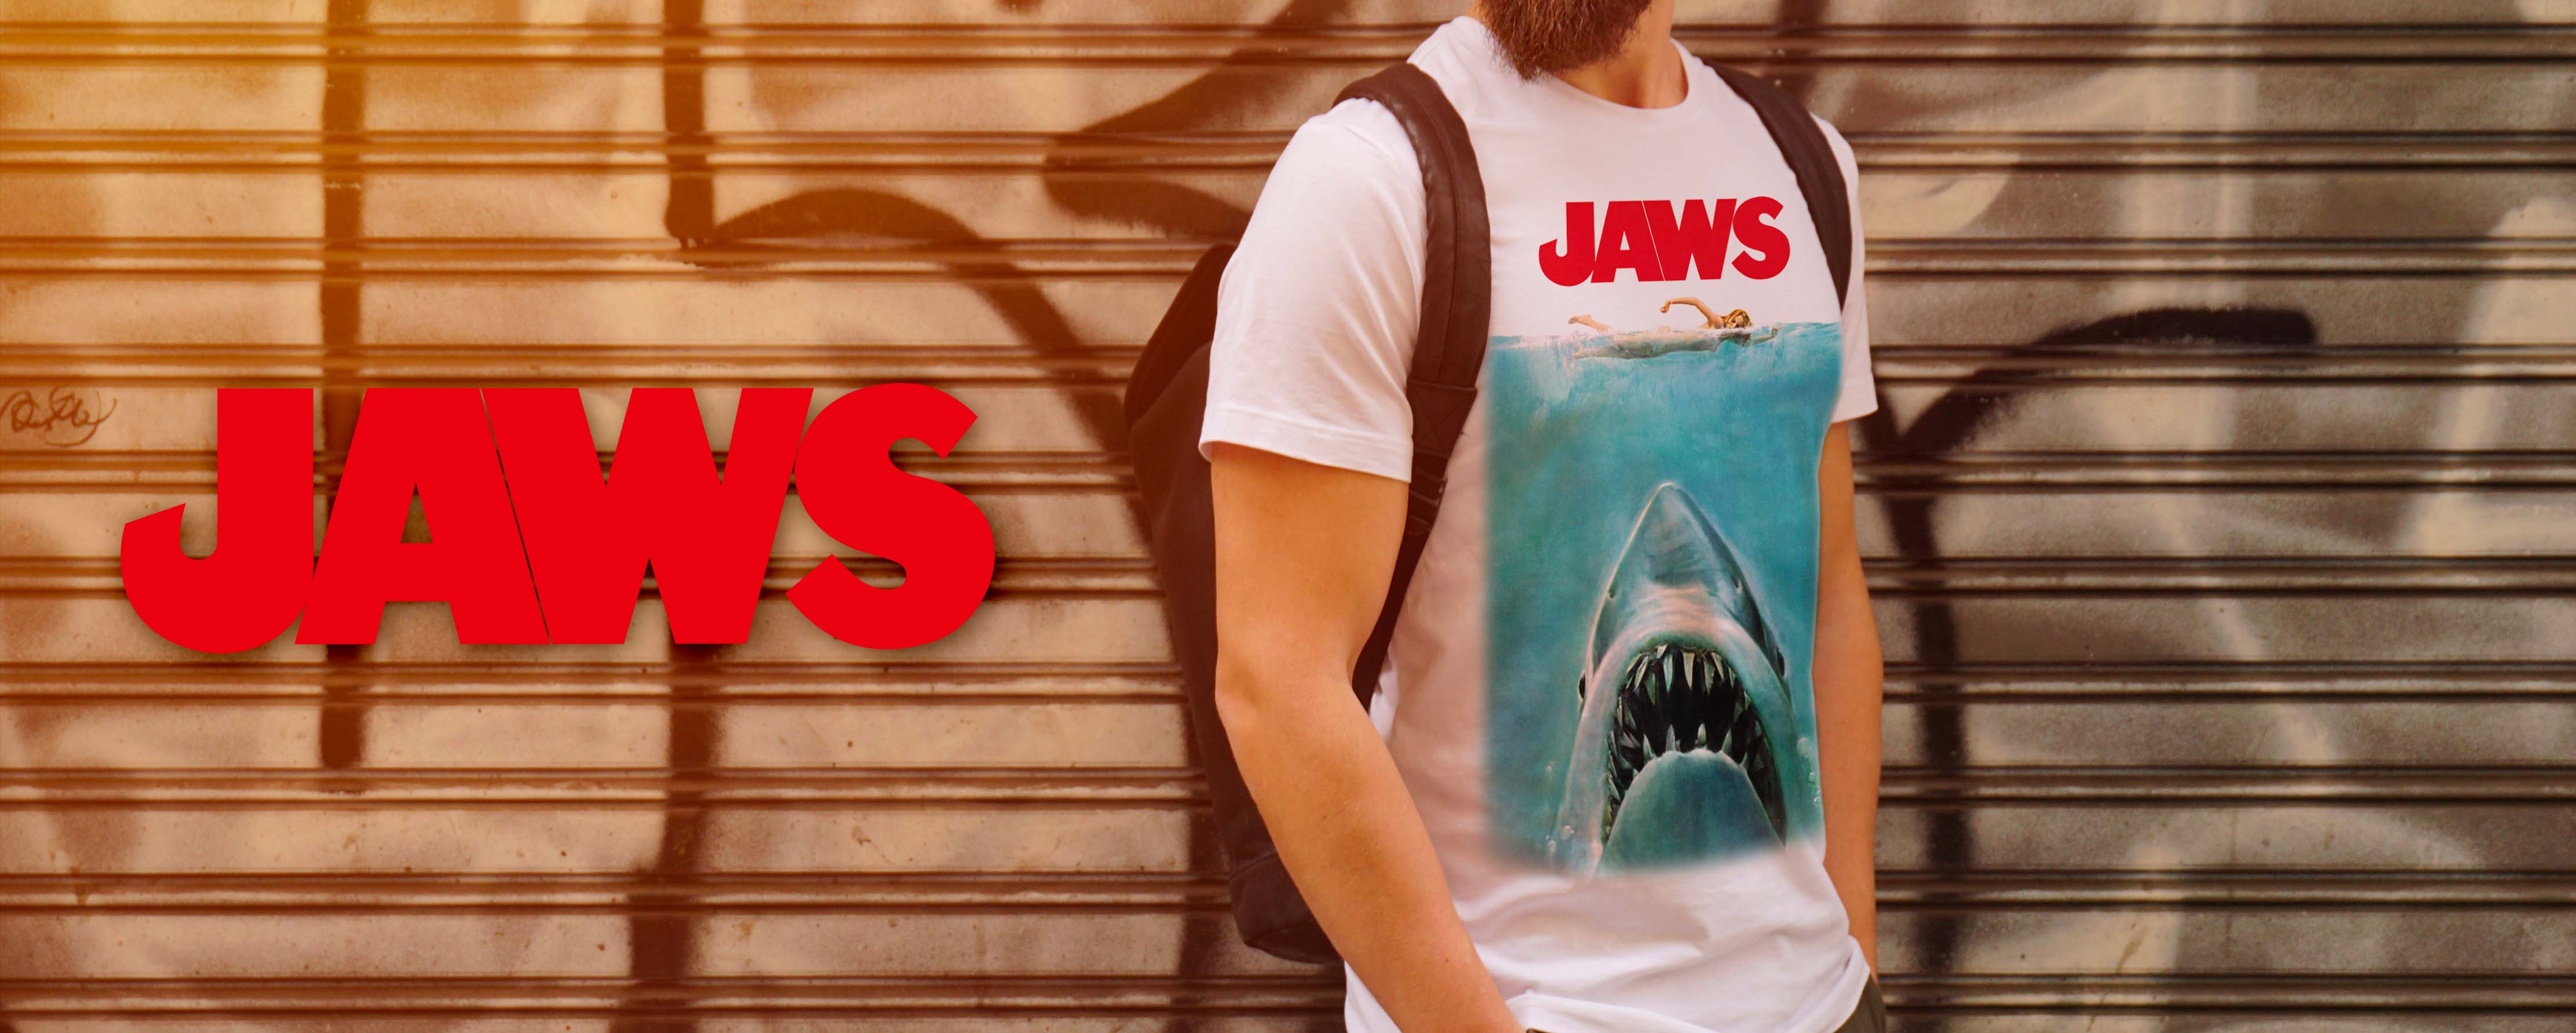 JAWs-Large-Banner